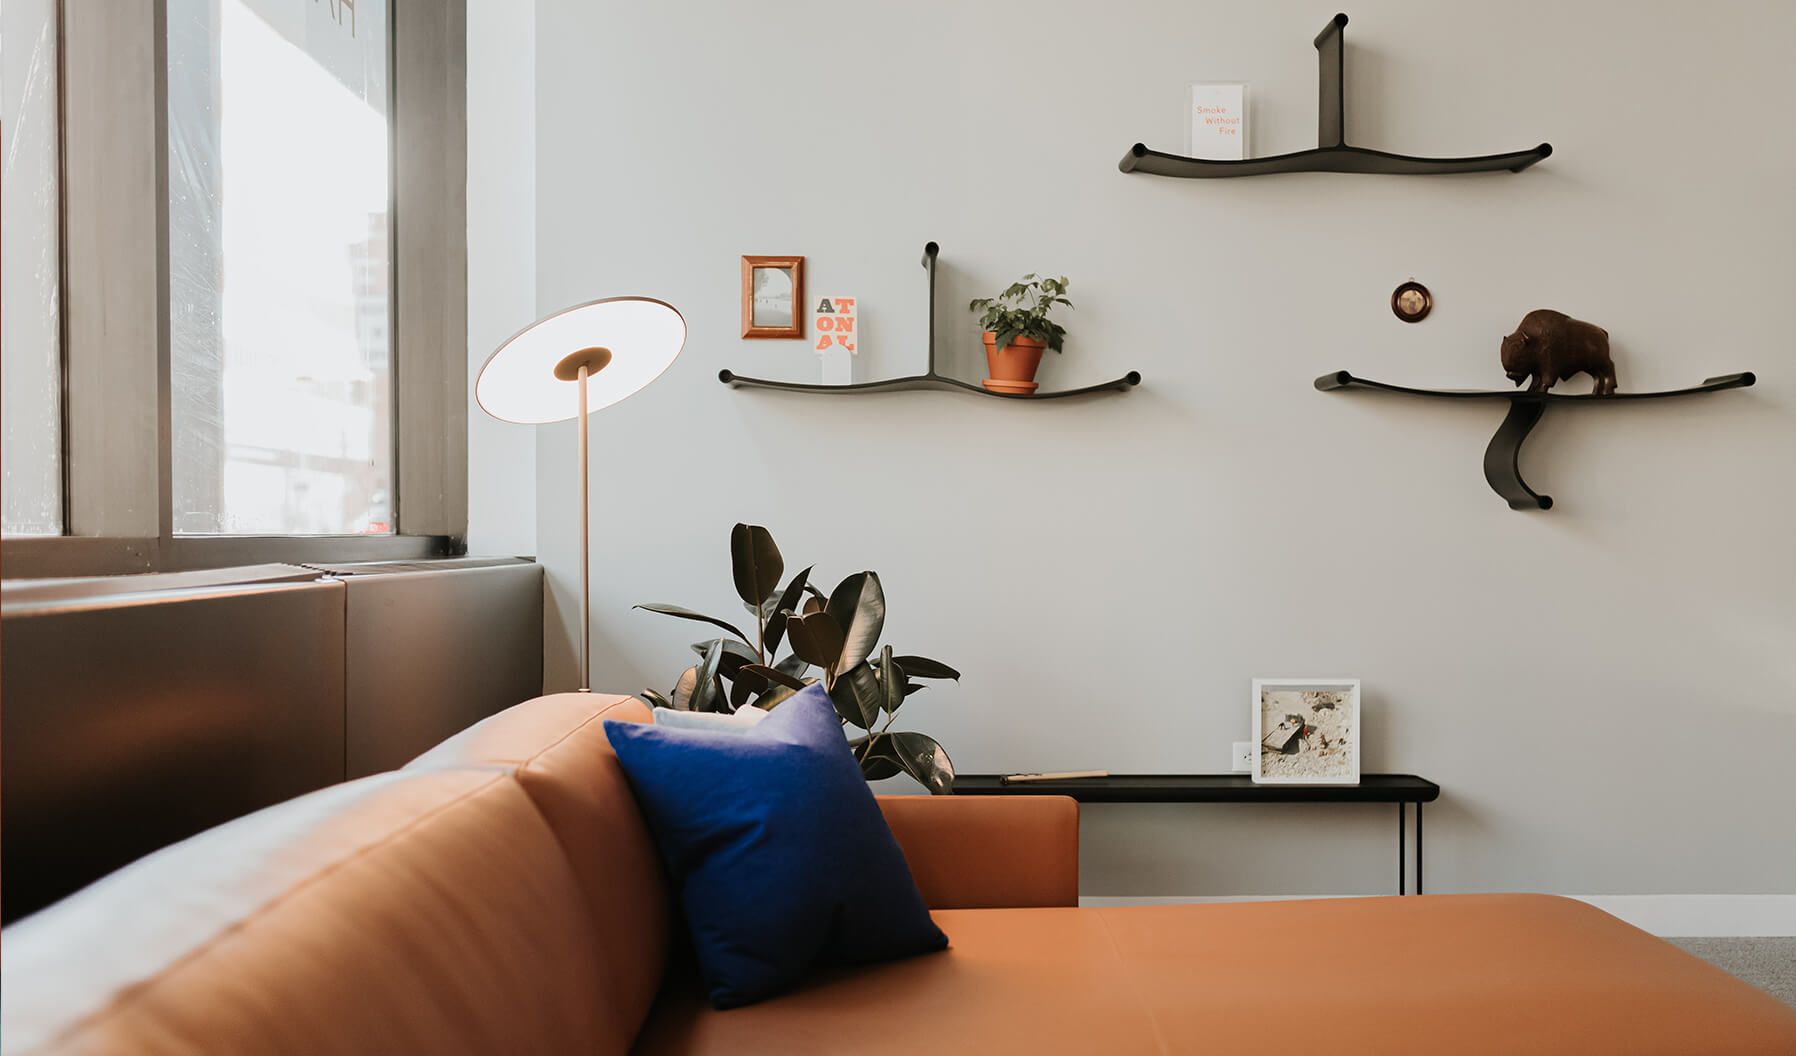 The range of products around this lounge application, such as the use of